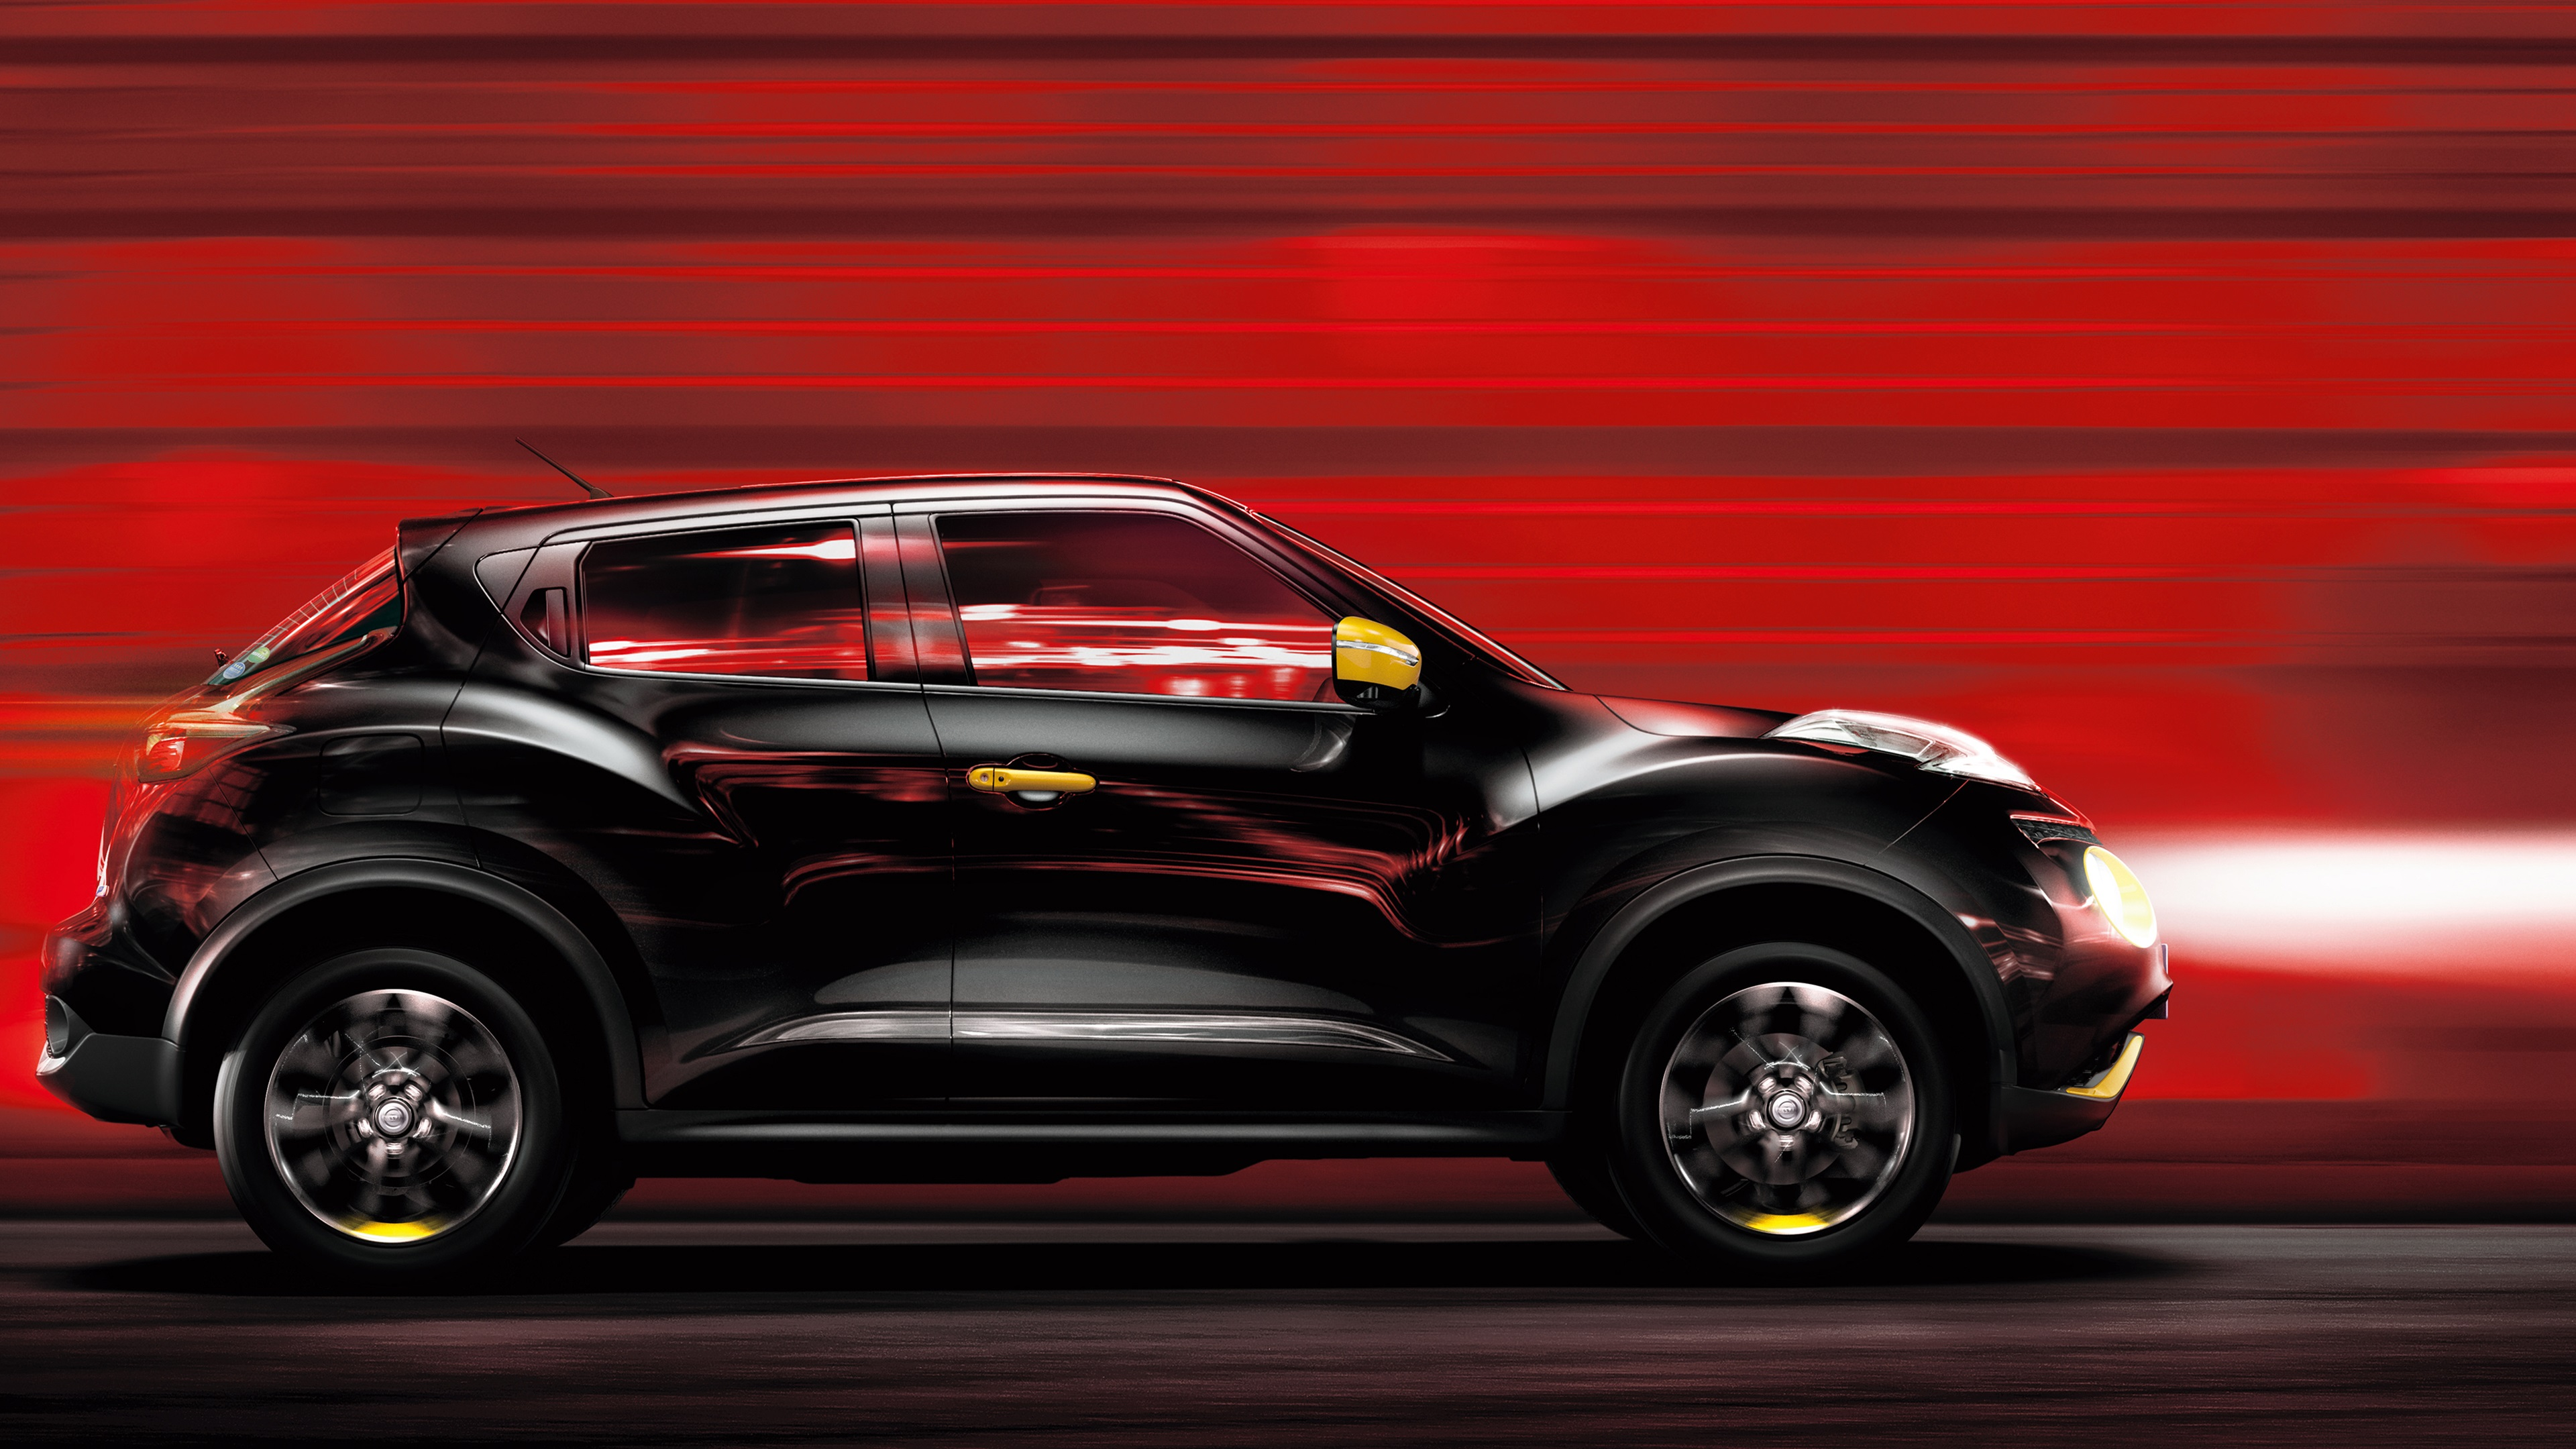 4k nissan juke wallpaper 65897